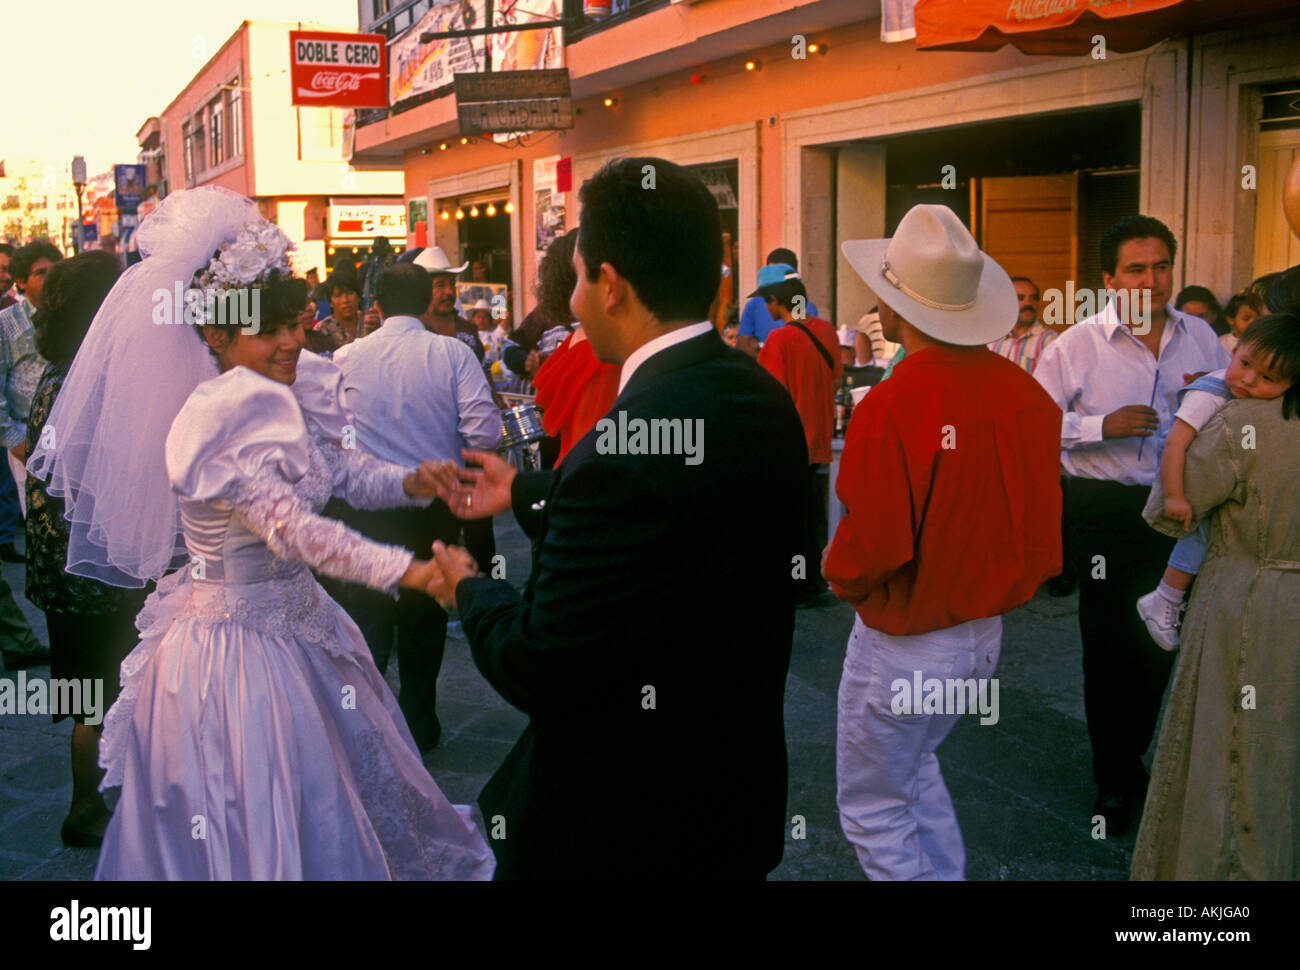 Mexican People Bride And Groom Wedding Guests Party Dancing Along Street In The City Of